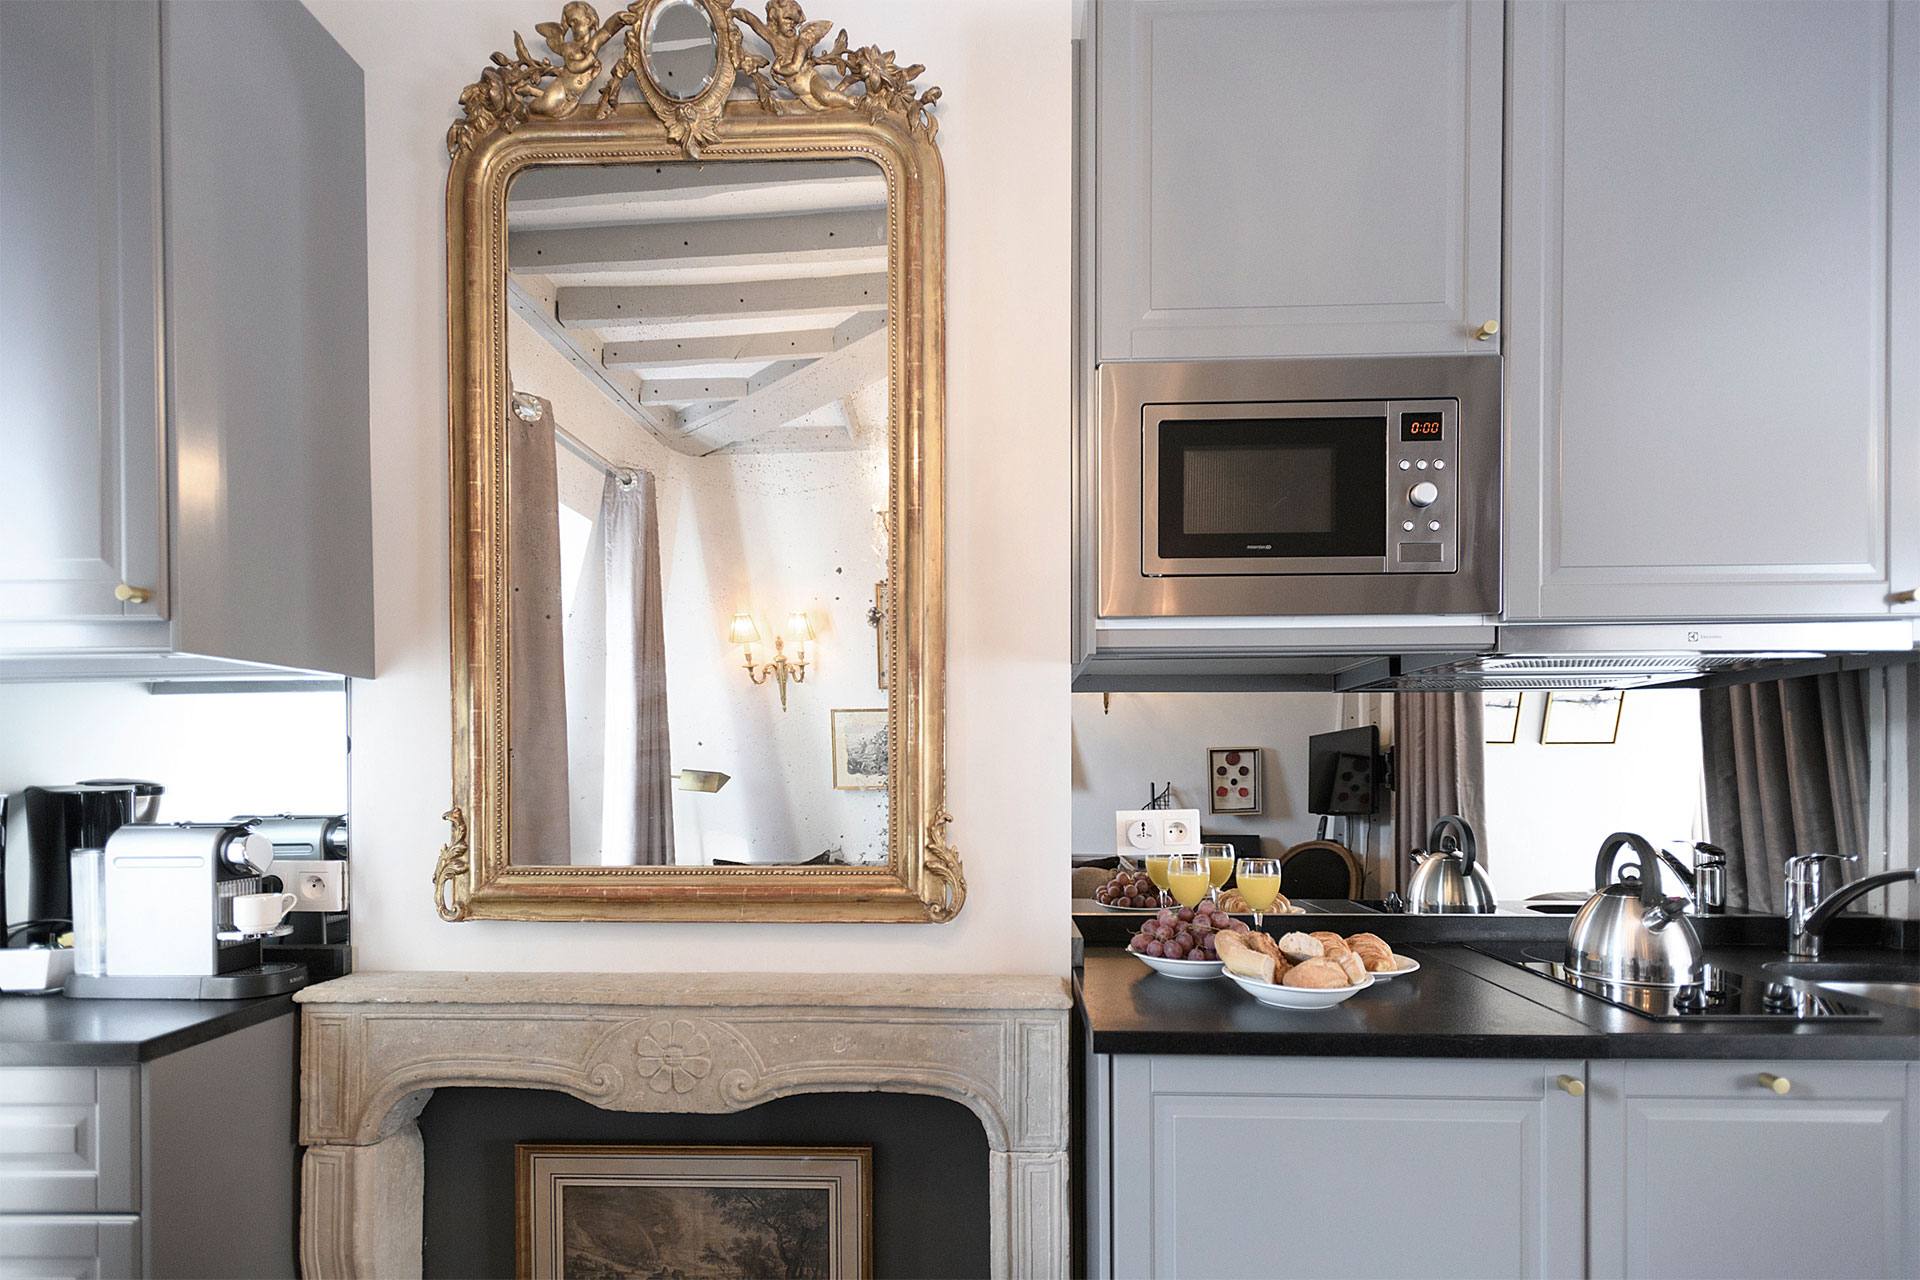 Stunning fireplace is a feature in the open kitchen at the Cremant Paris Perfect rental